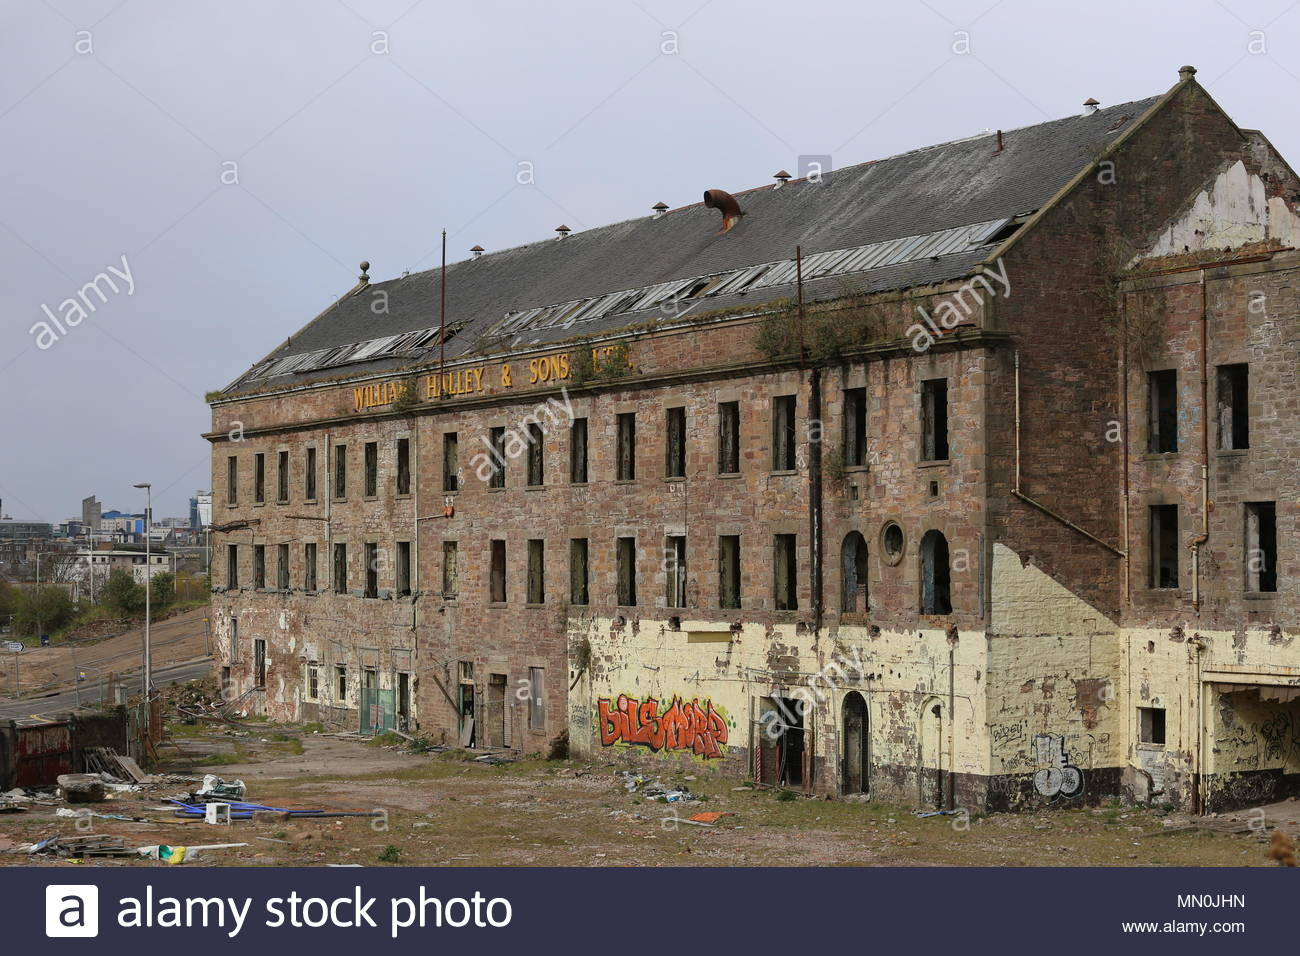 William Halley & Sons' Wallace Craigie Works Dundee Scotland  April 2016 (Demolished May 2018) - Stock Image